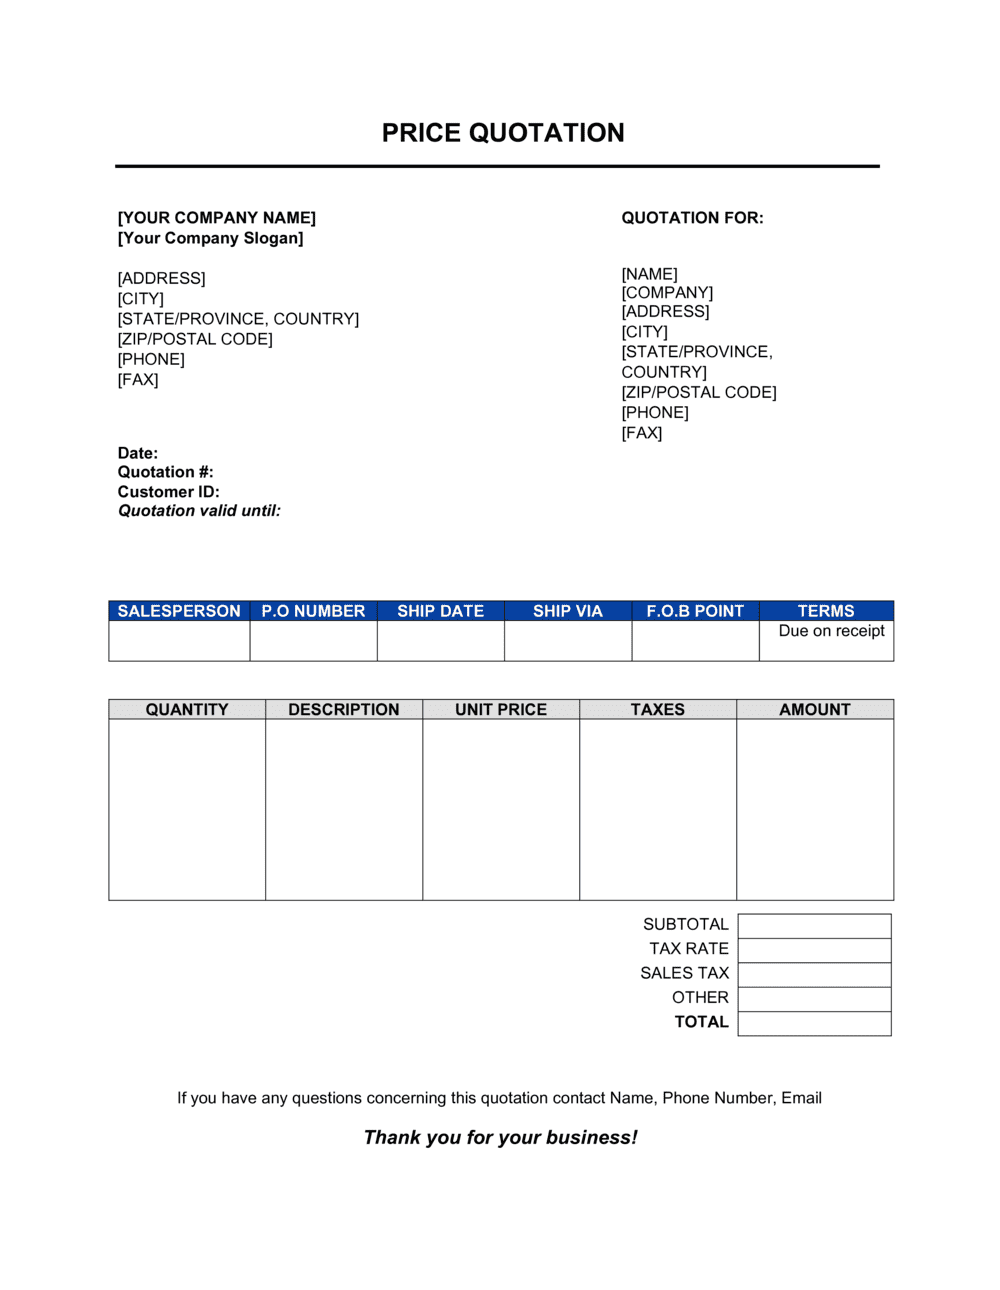 Business-in-a-Box's Price Quotation Template